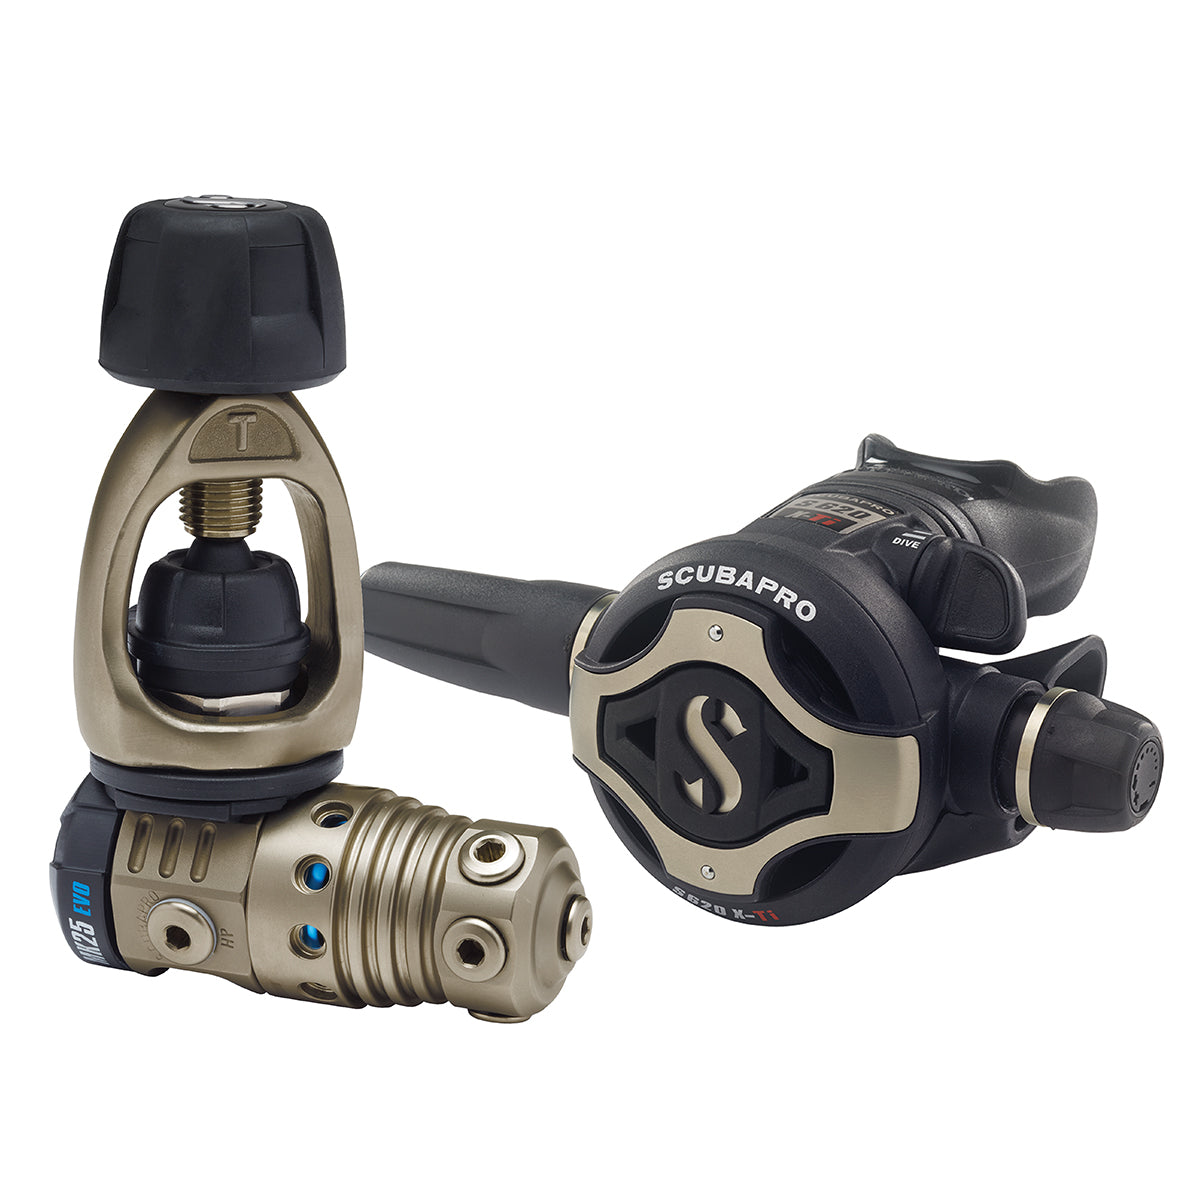 MK25T EVO/S620 X-TI DIVE REGULATOR SYSTEM, INT